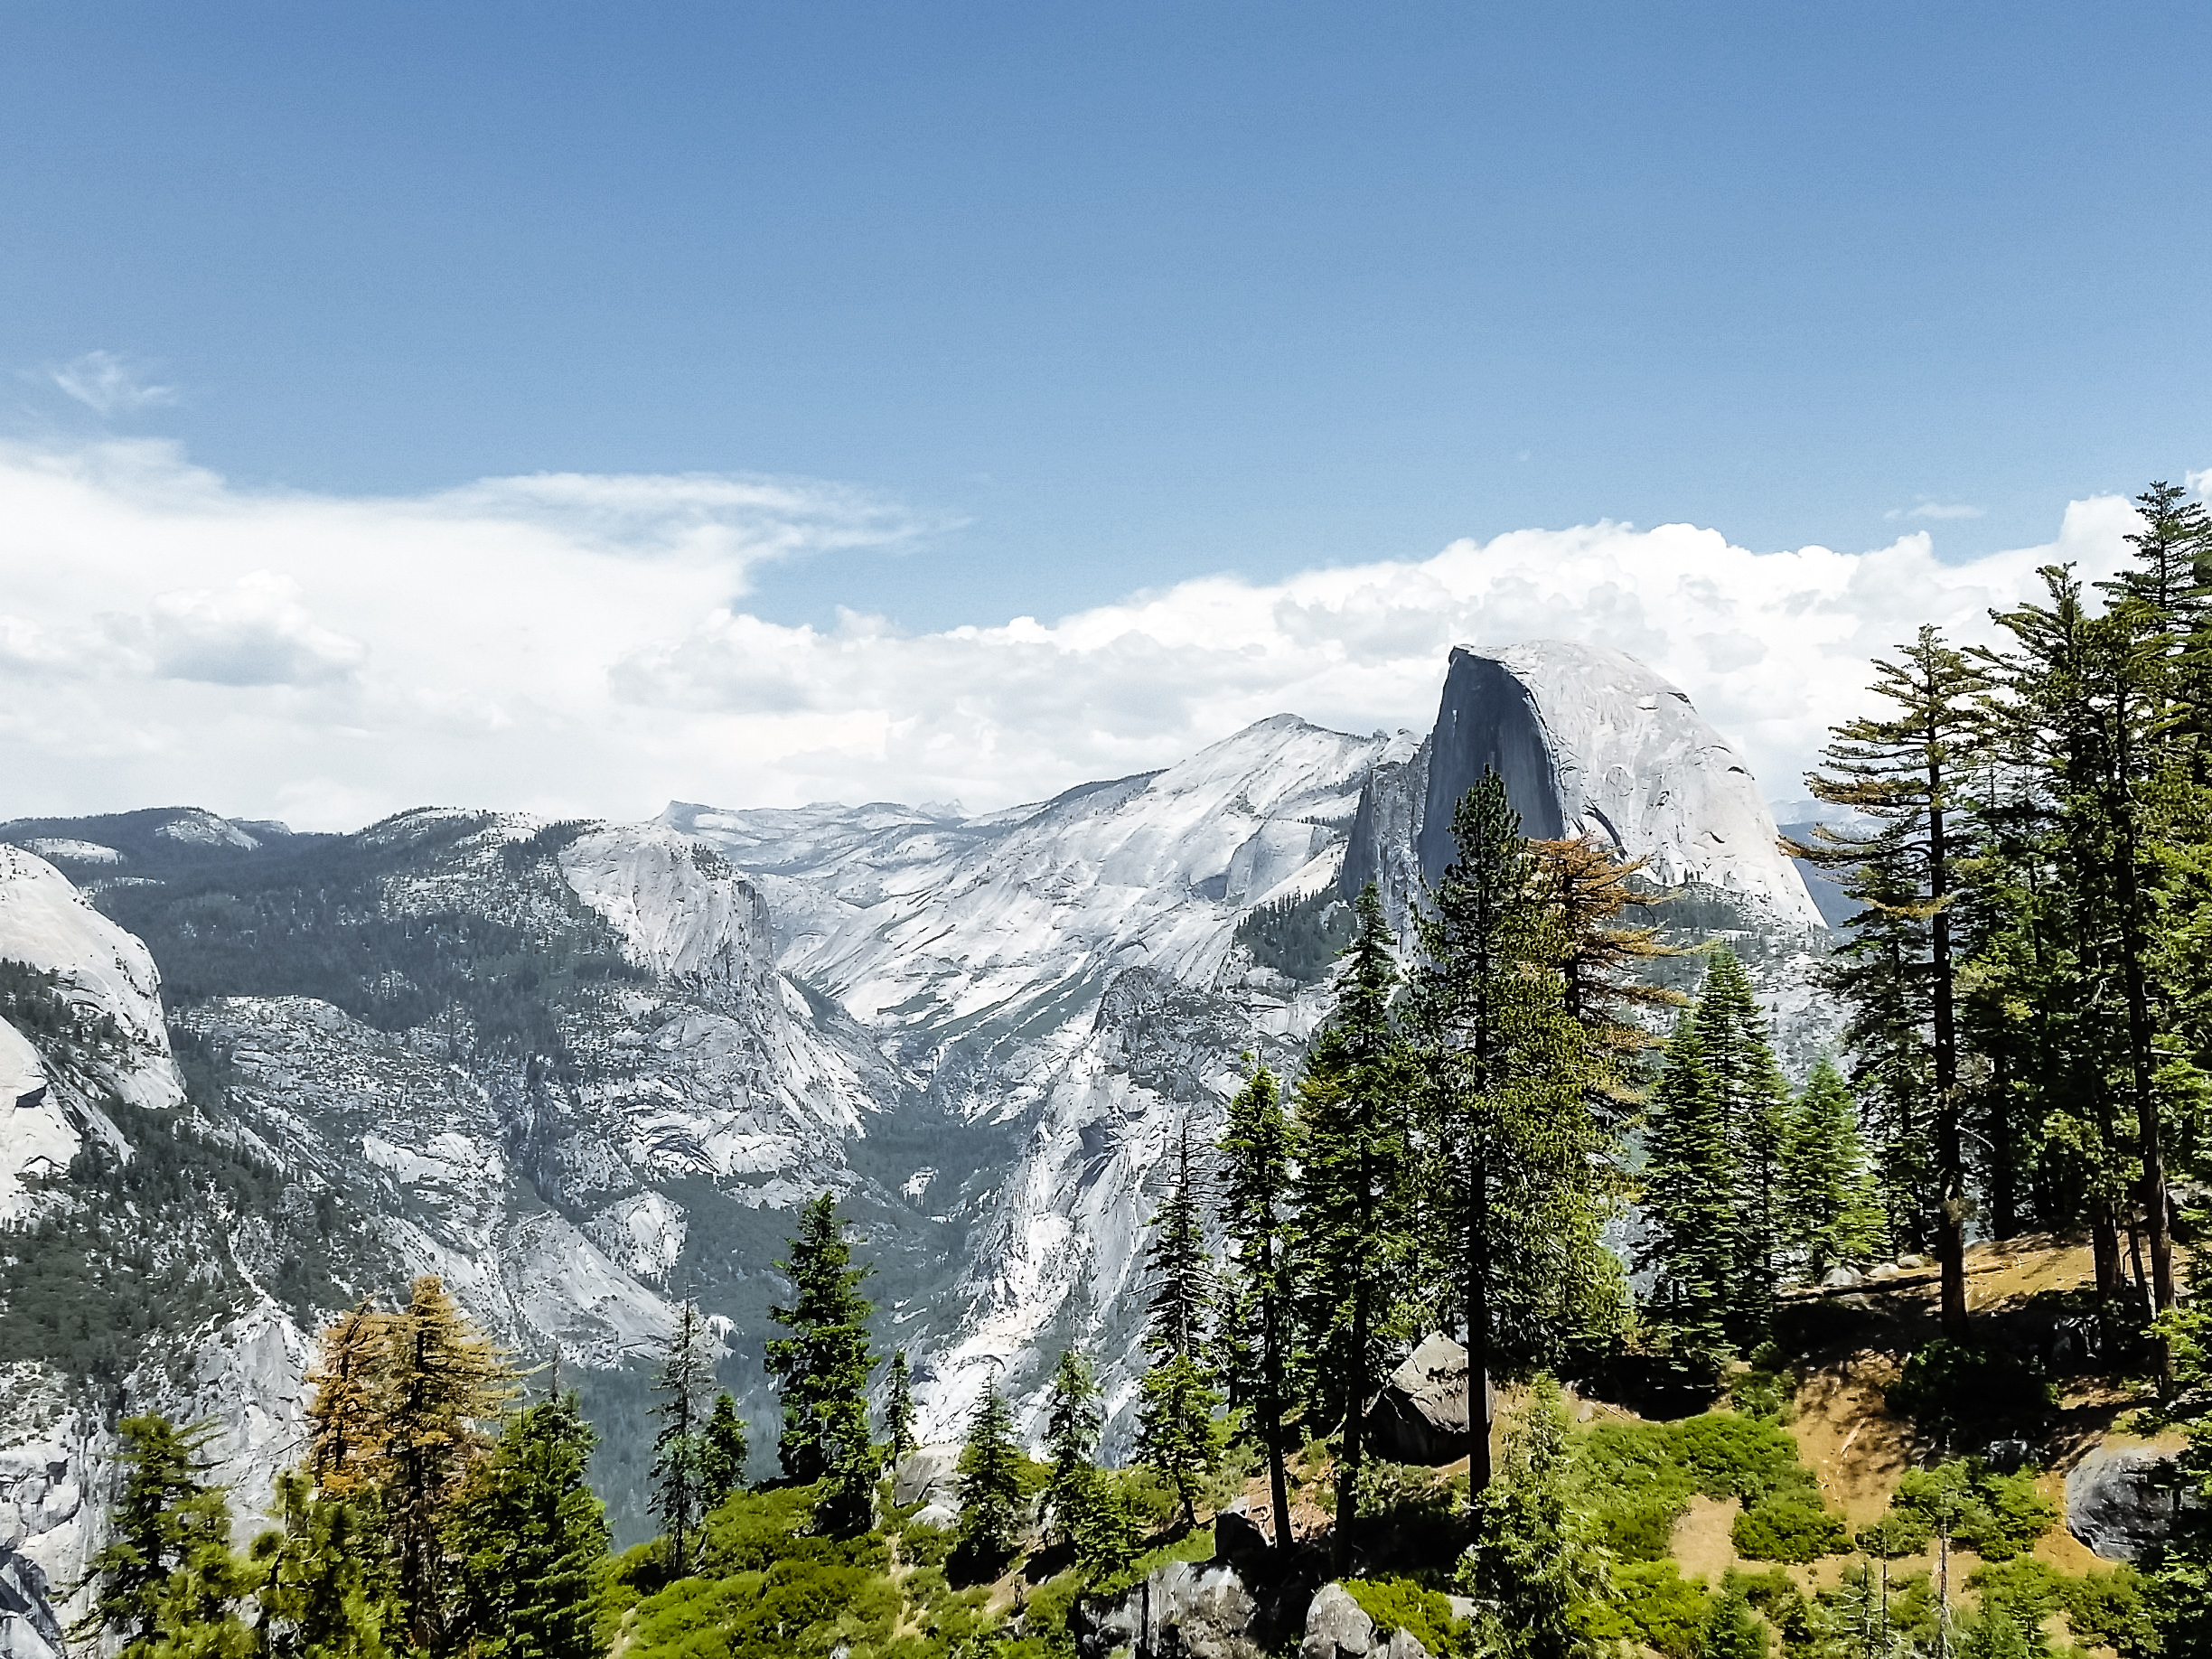 We got a ride fairly easily and hiked up to Glacier Point